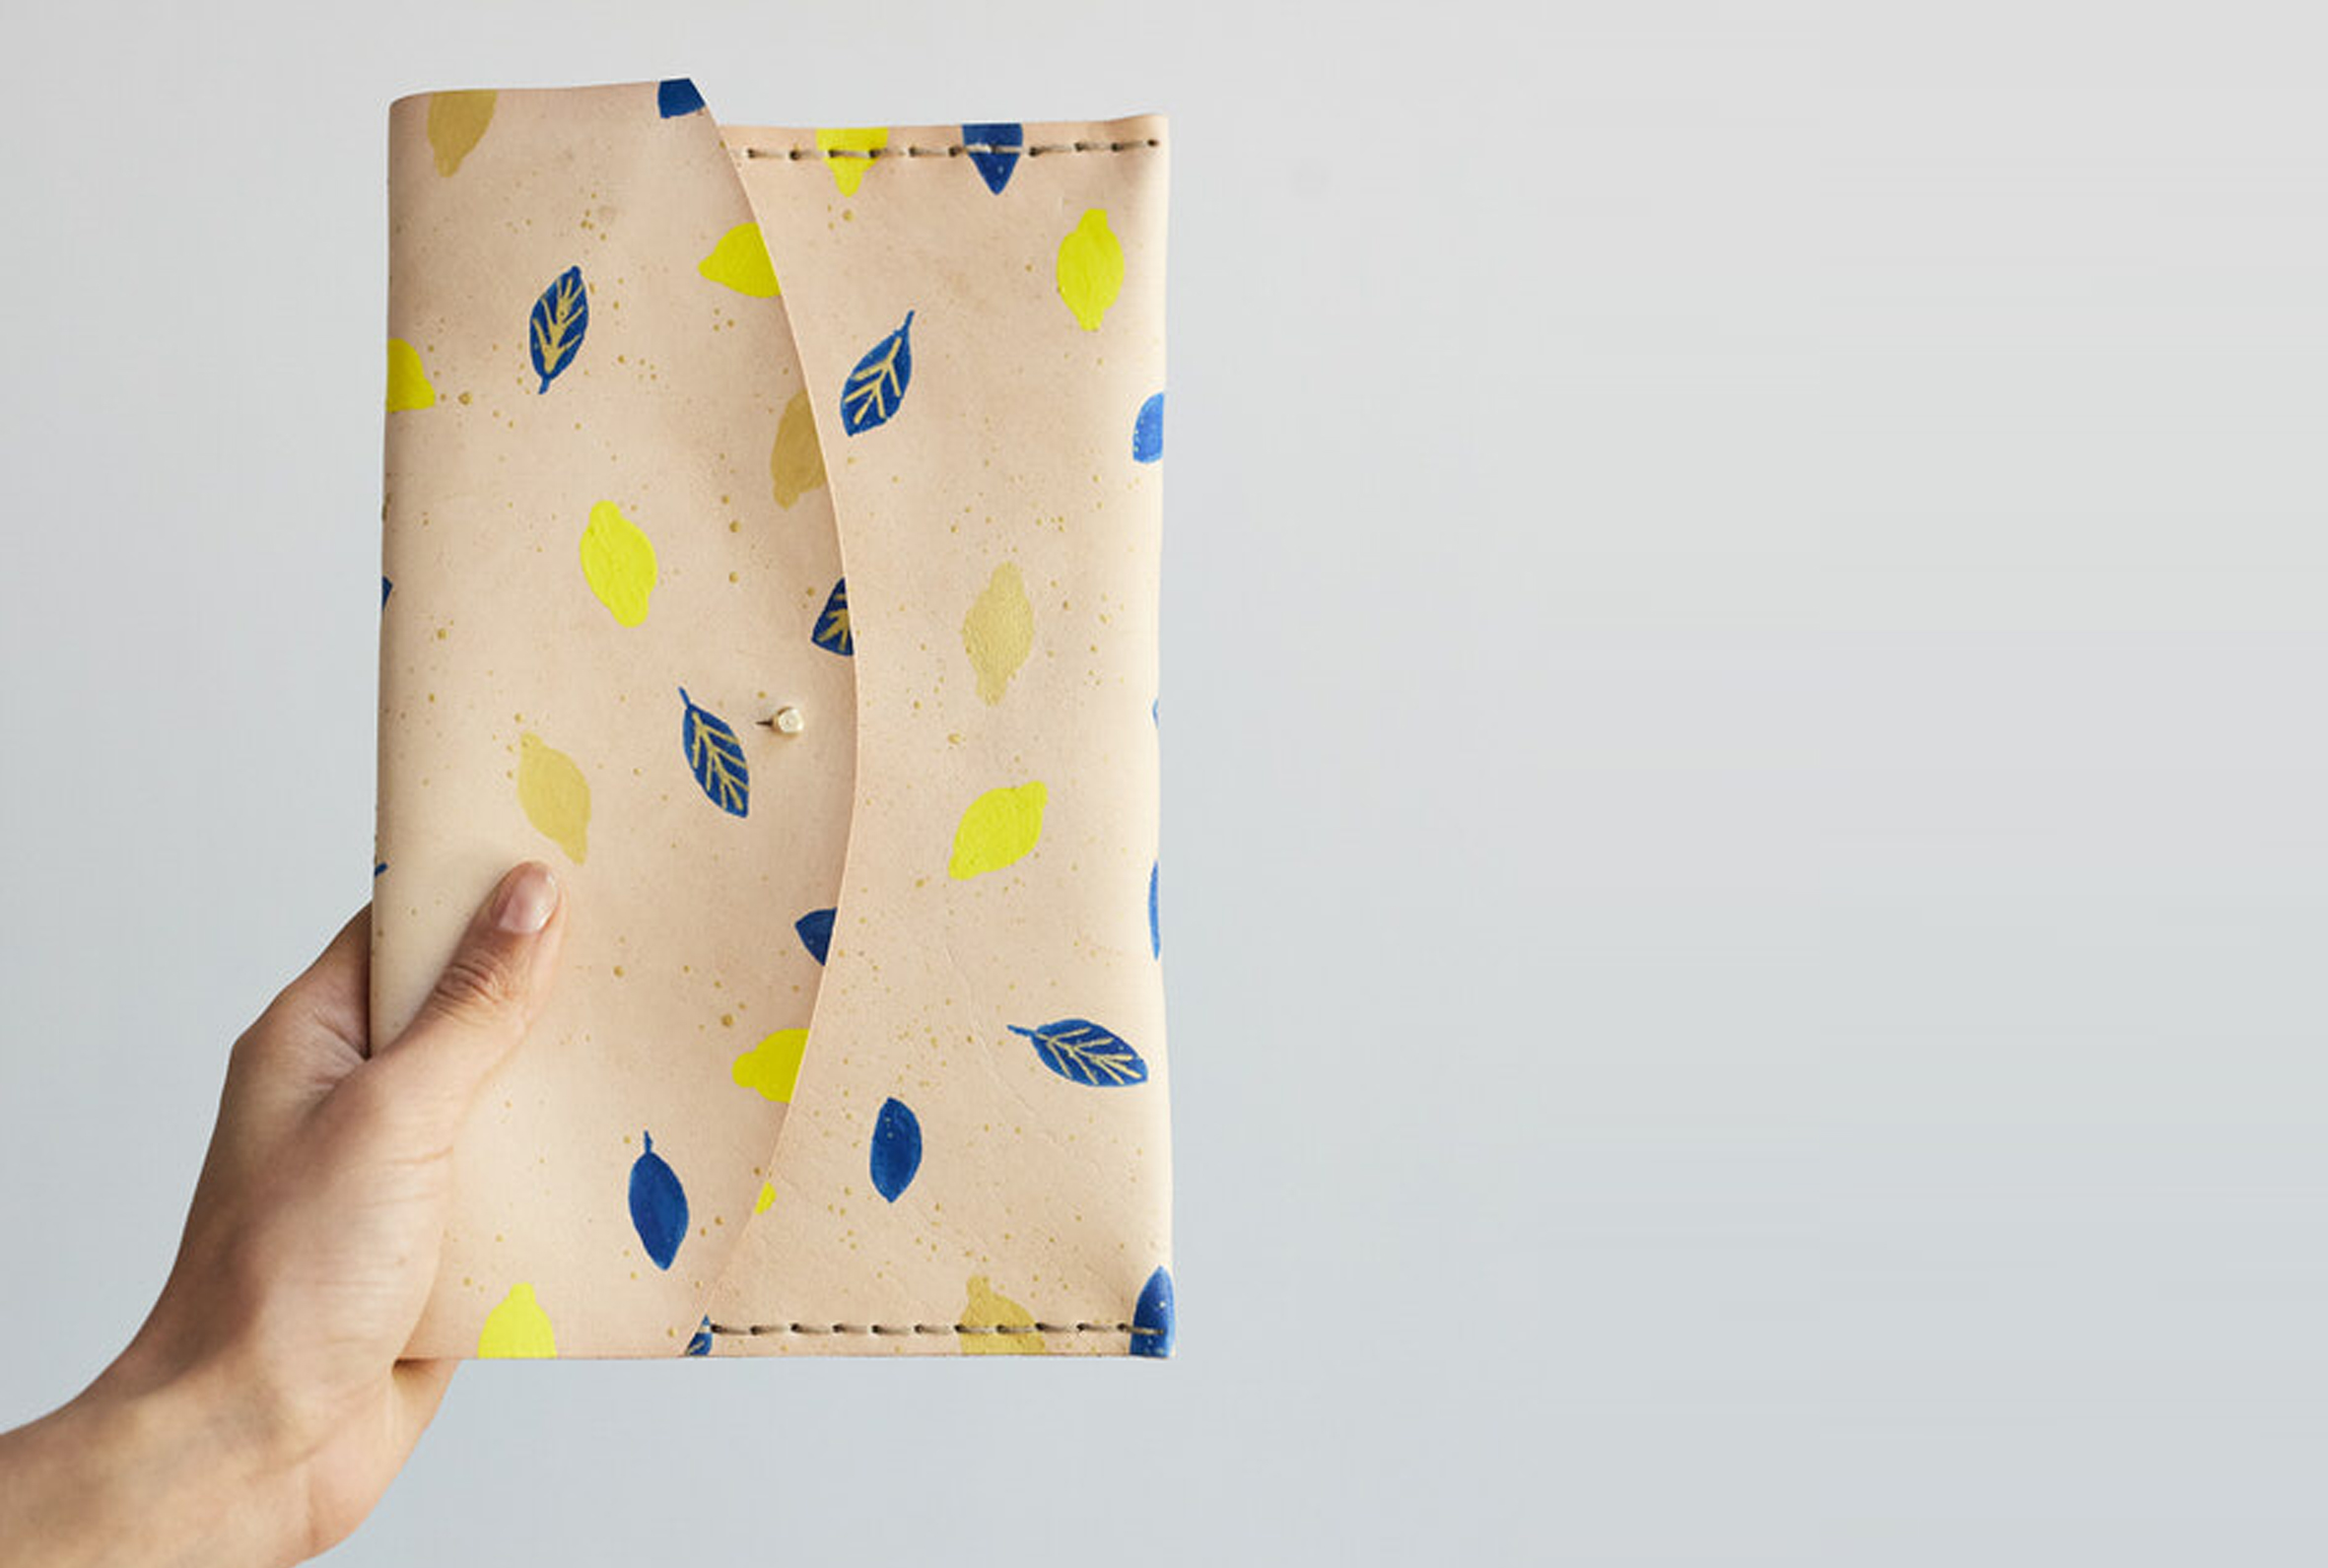 The Lemons Clutch in oyster ishand crafted usinglocally sourced vegetable tanned cow hide. It is hand painted by Cape Town based artist Danelle Malan using a specially formulated leather paint. As the pattern is hand painted, please expect slight variations from product to product.  Dimensions: H 16cm x W 25cm x D 0.5cm  PLEASE NOTE THAT THISPRODUCTISMADE TO ORDER AND CAN TAKE UP TO 7 DAYS TO FINISH BEFORE SHIPPING. ONCE YOUR ORDER HAS BEEN SENT WE WILL SEND YOU THE WAYBILL NUMBER FOR TRACKING PURPOSES. DELIVERIES ARE MADE BETWEEN 9AM AND 5PM FROM MONDAYS TO FRIDAYS.  Please note thatIlundi products aremade with the finest quality materials available. Any irregularities in the colour or in the grain are normal characteristics of natural leather. Leather items may have wrinkles, scars or scratches, that are an inherent quality and natural beauty of the hide.